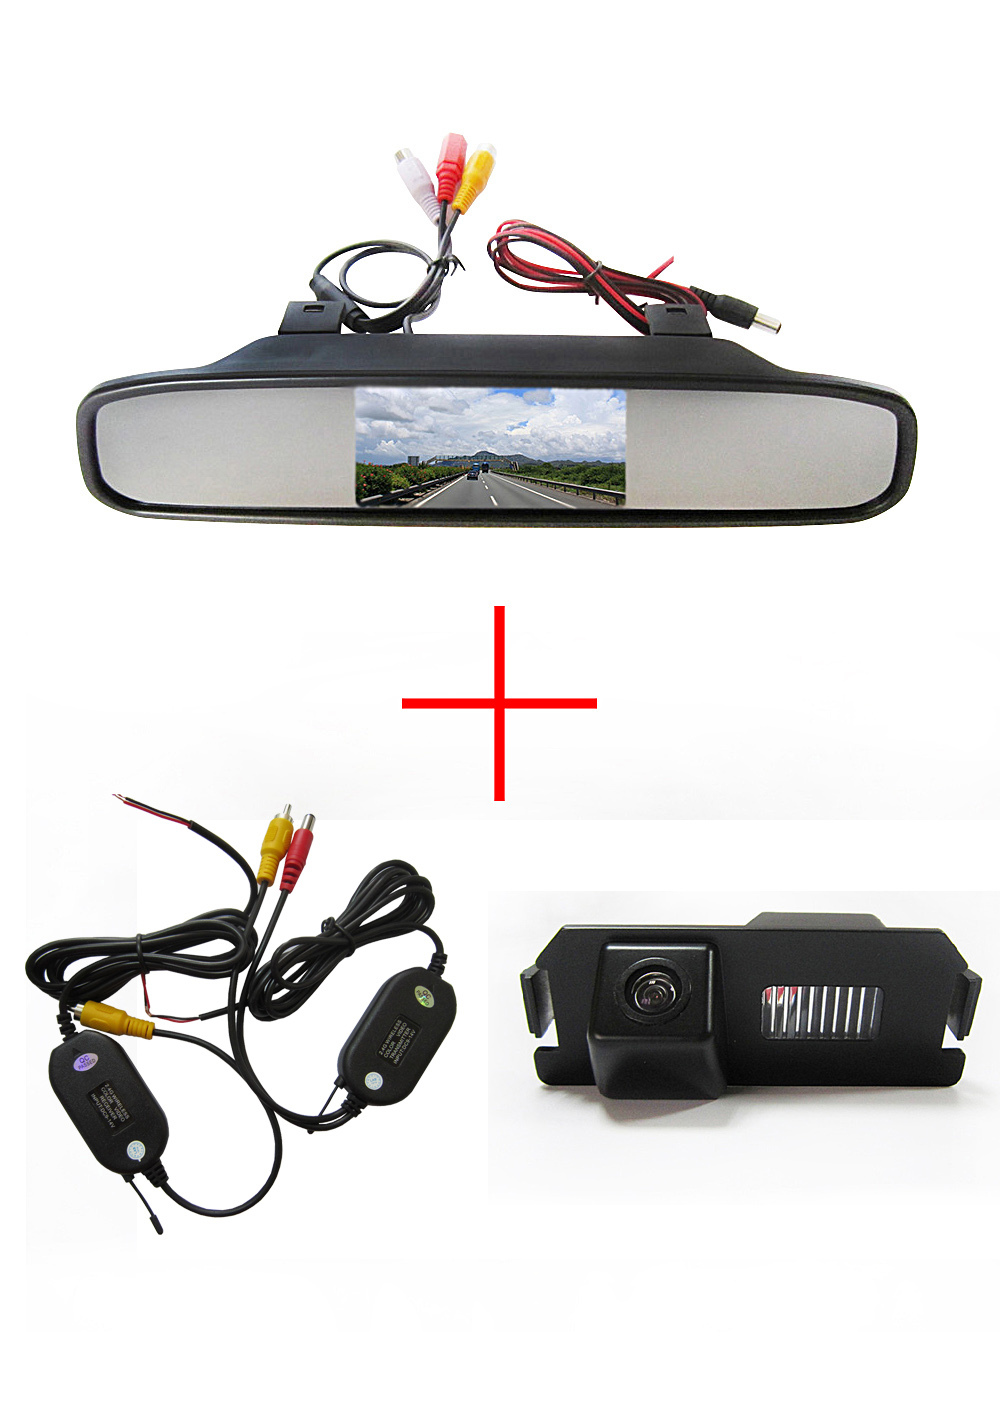 Wireless Color CCD Chip Car Chip RearView Camera for HYUNDAI I30 GENESIS COUPE Tiburon KIA SOUL